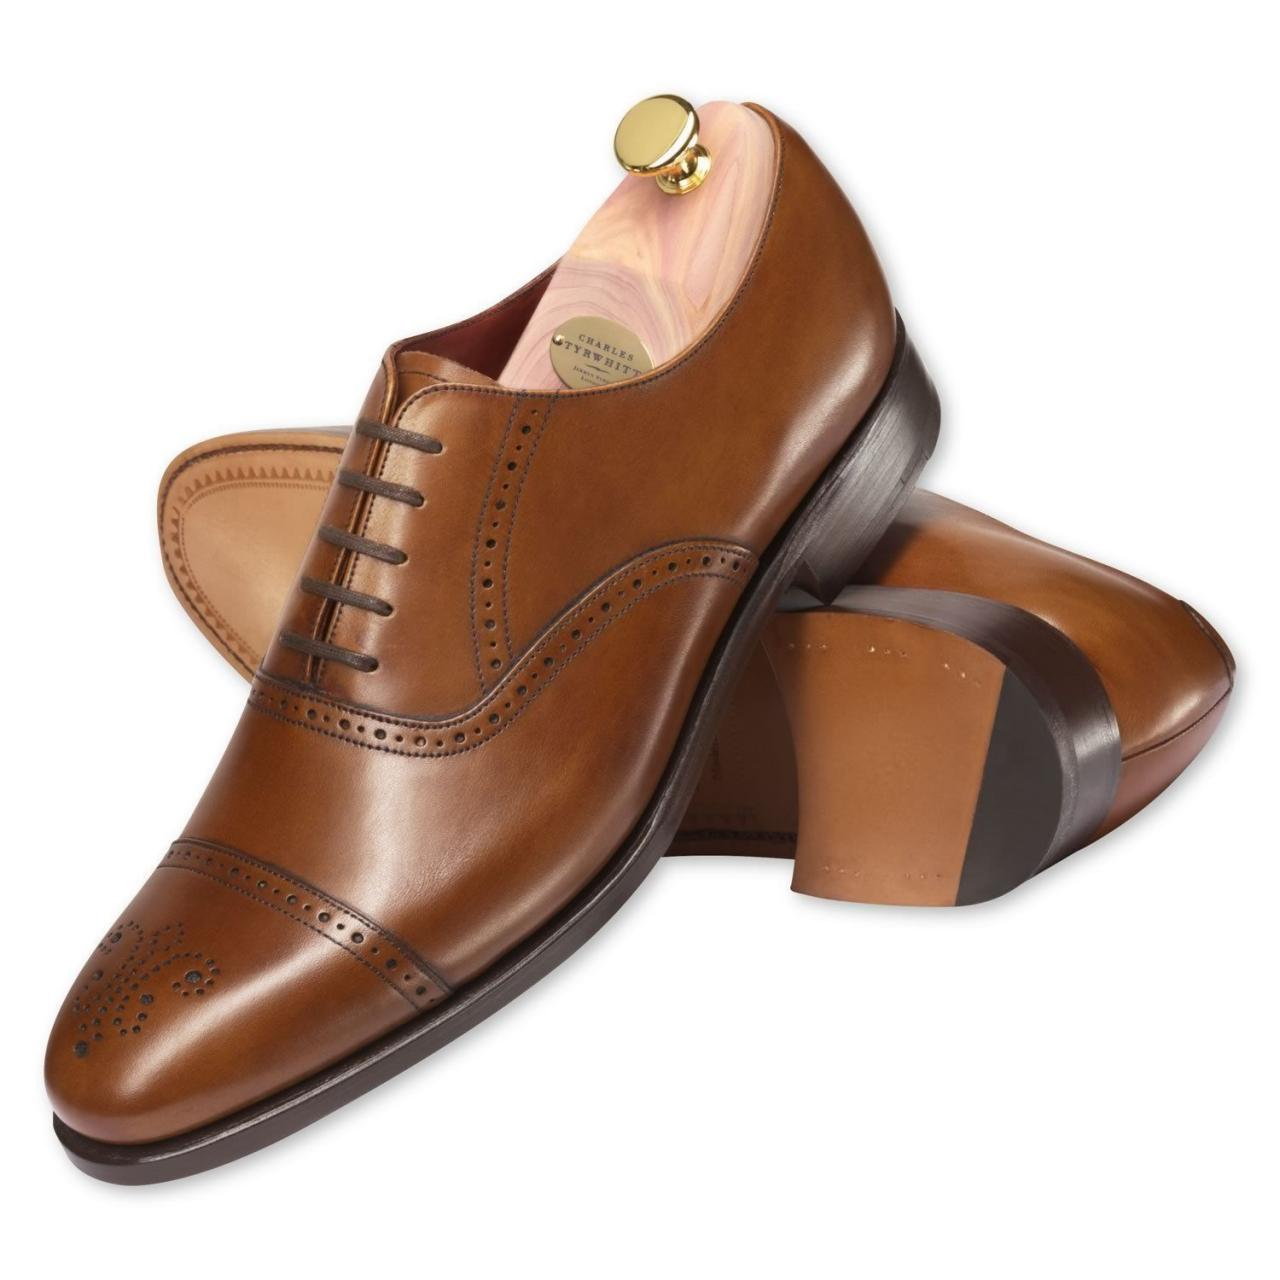 Handmade Mens Brown Color Dress Shoes Real Leather Sole Shoes With High Ankle